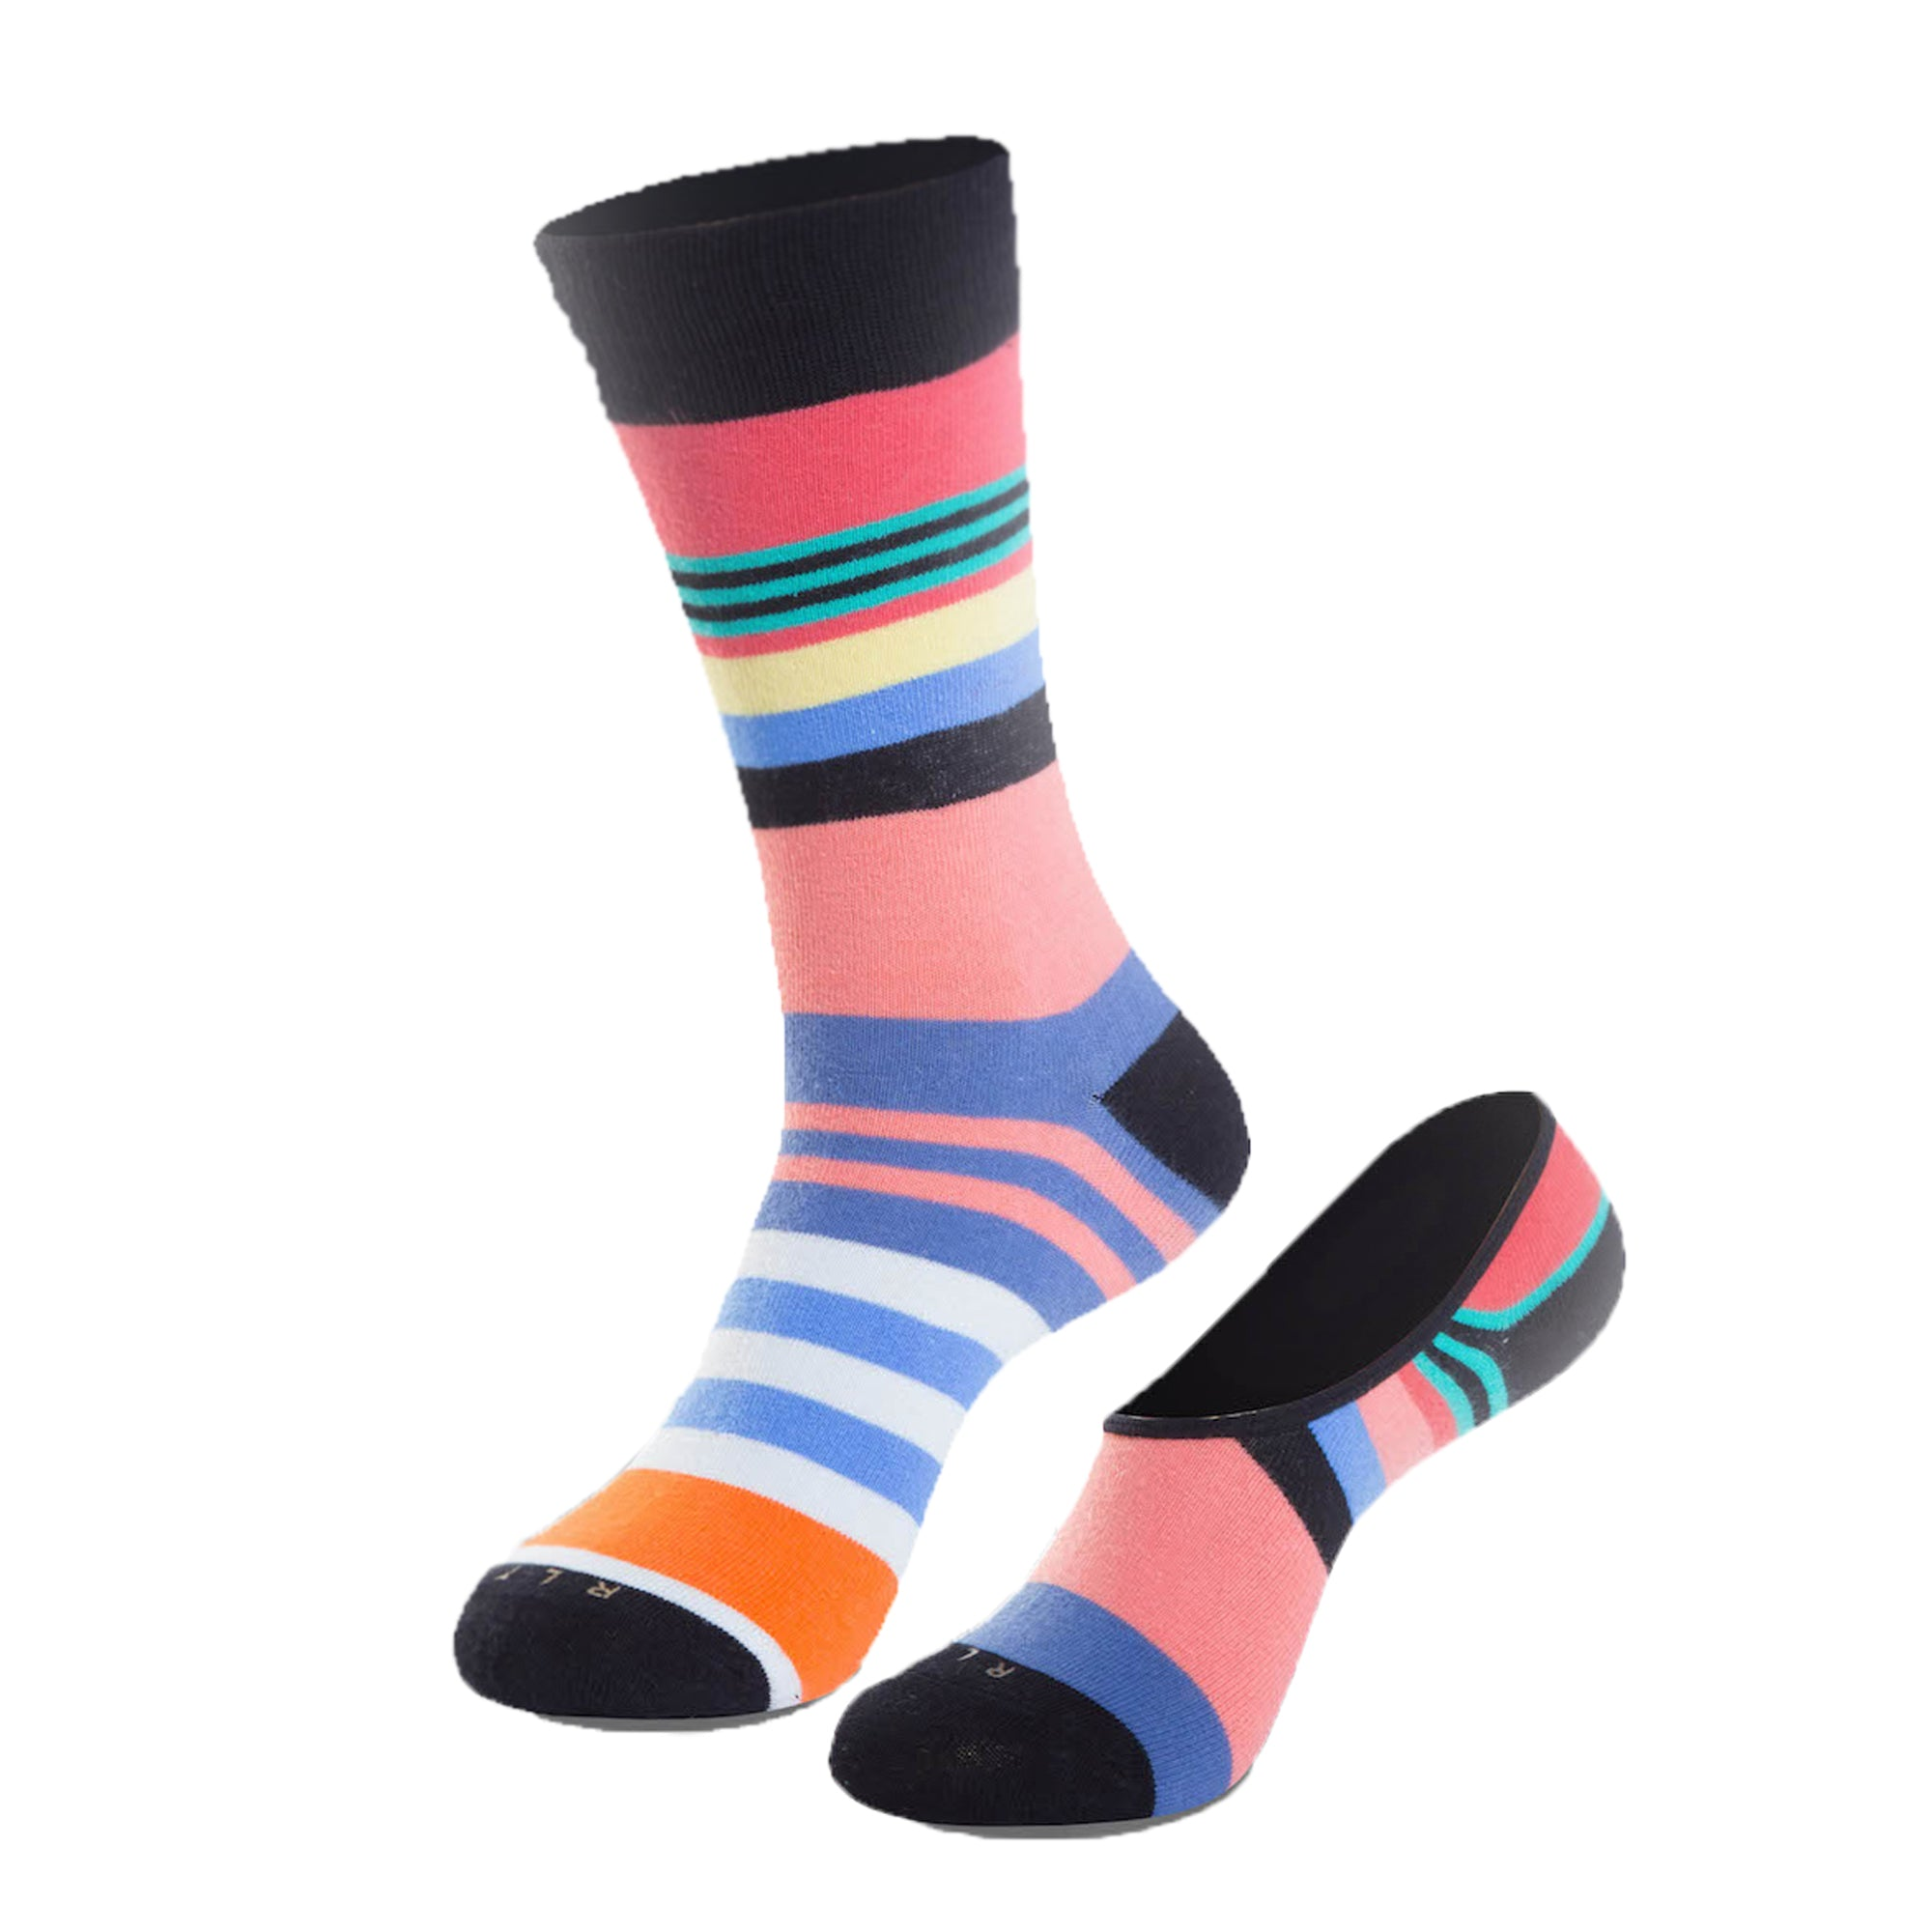 The Flying Cross Women's Crew Sock + No Show Sock Set